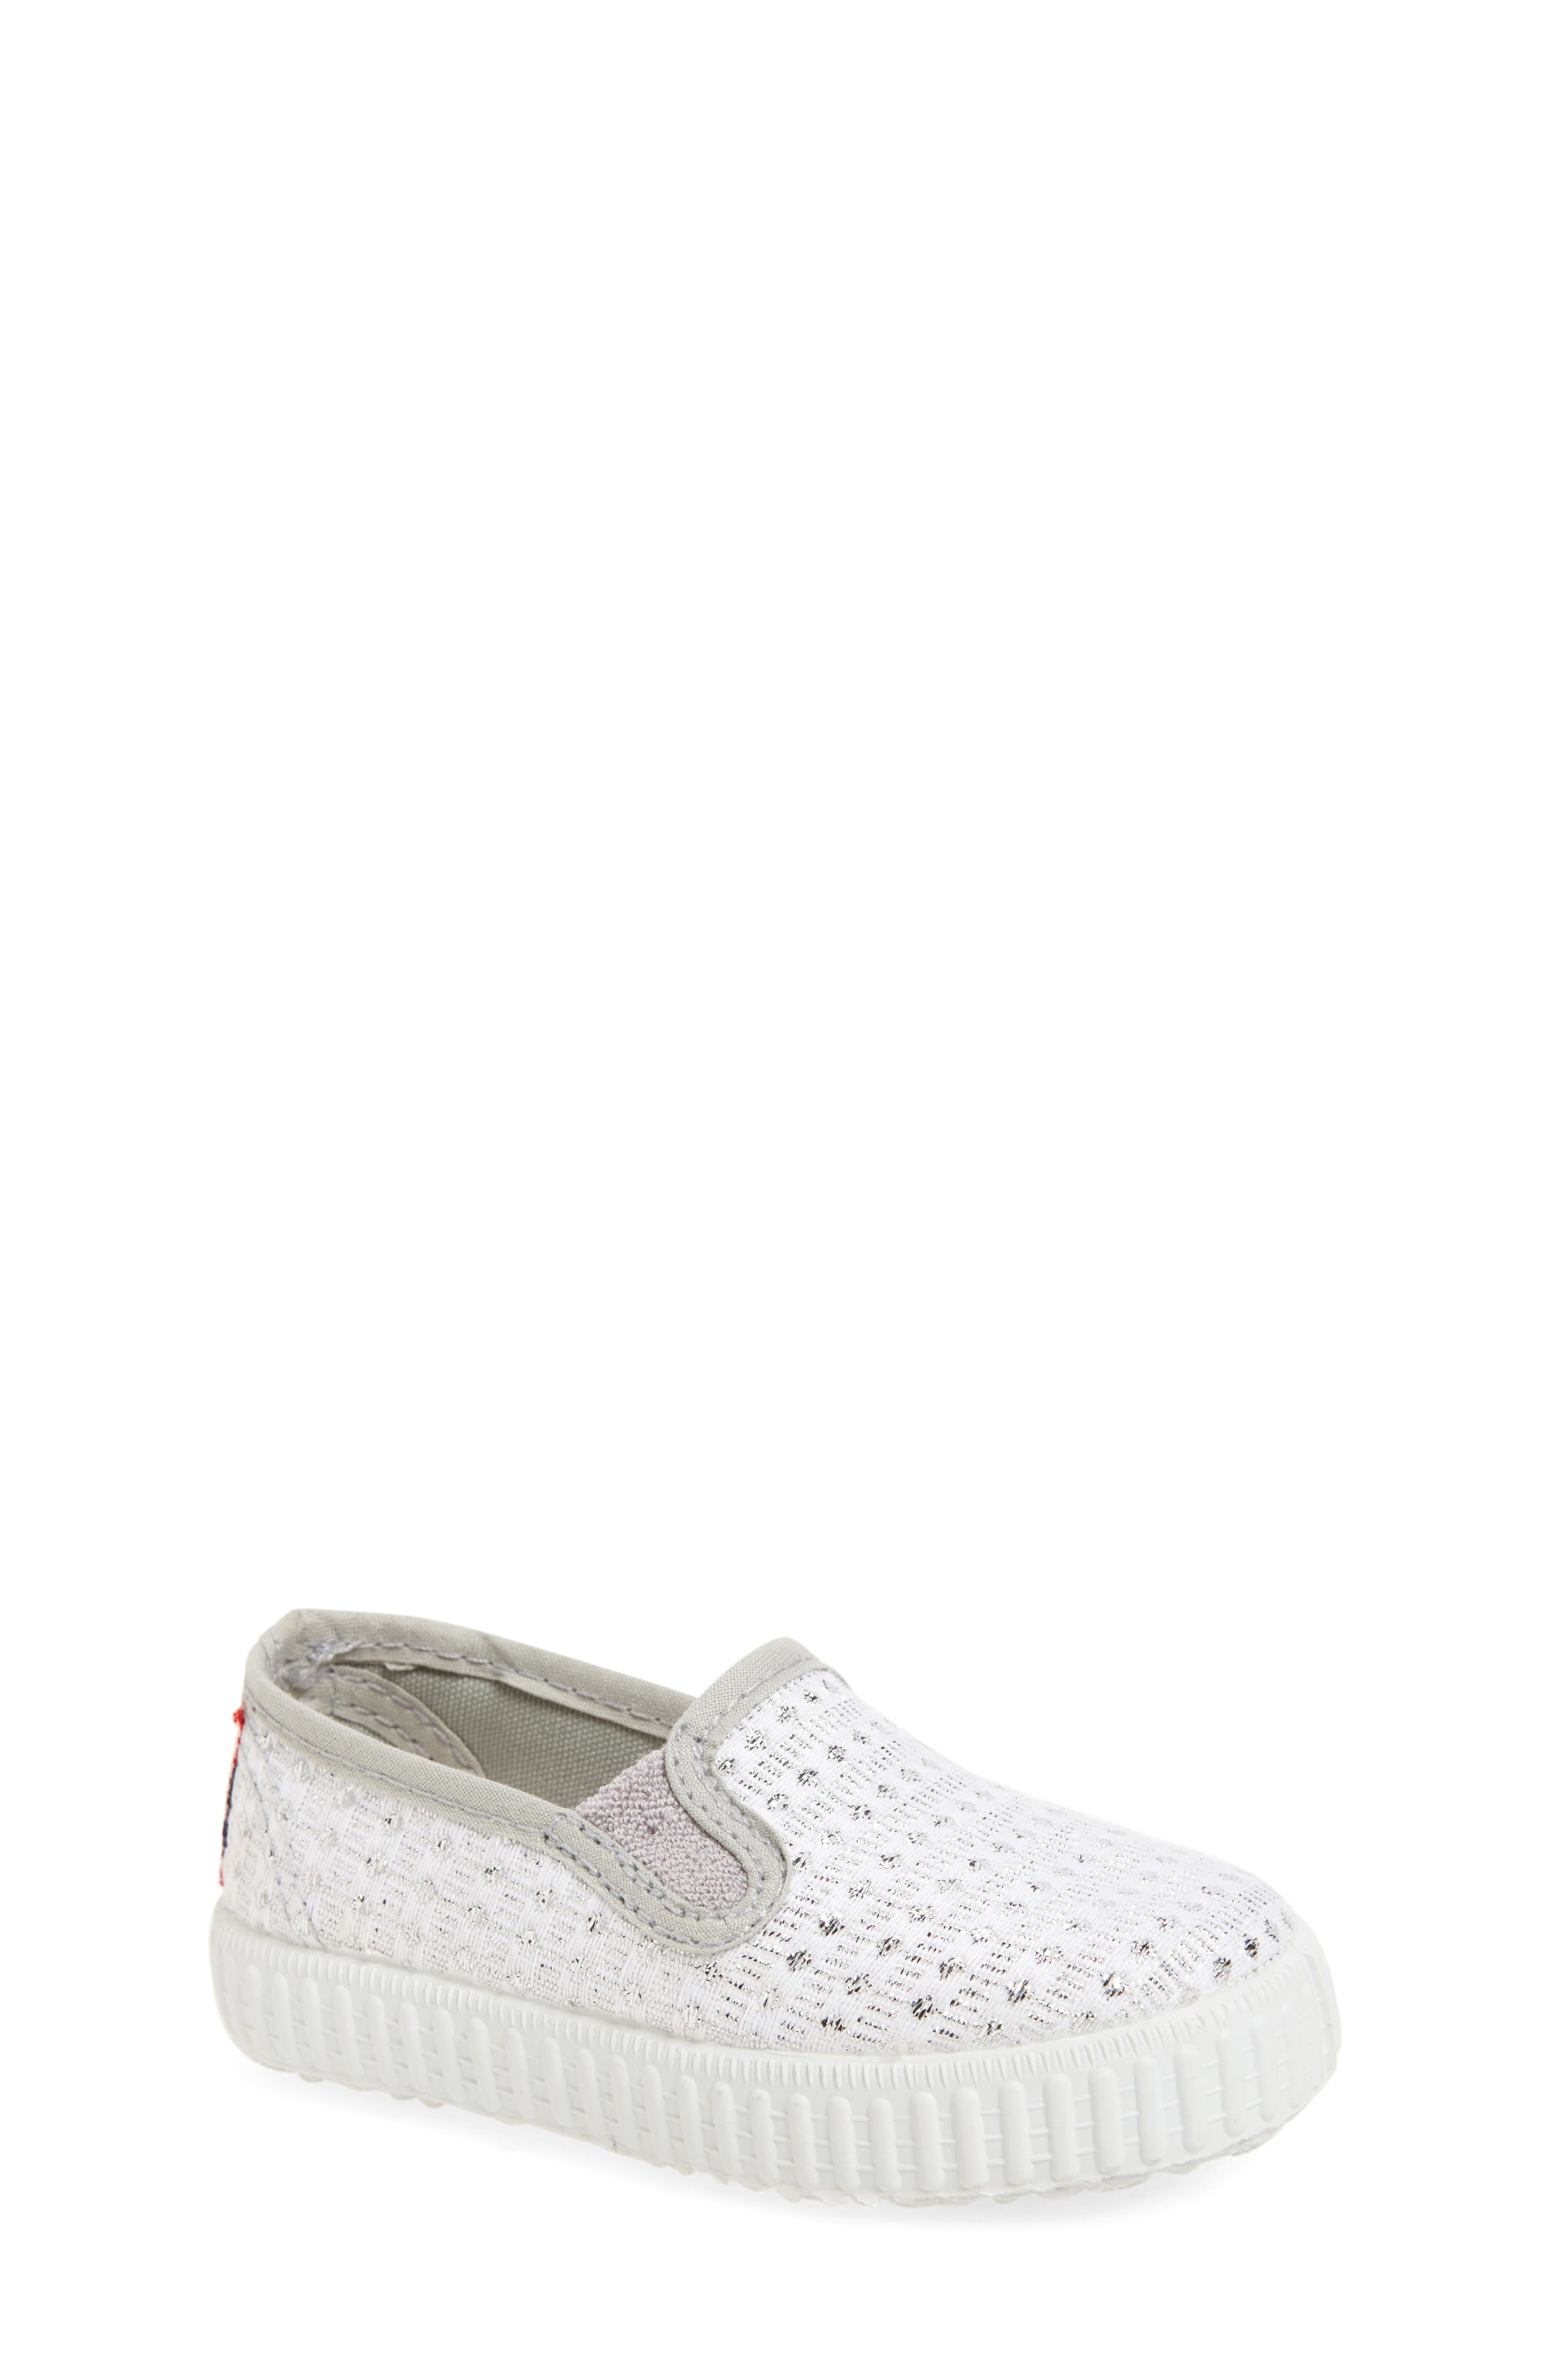 Main Image - Cienta Slip-On Sneaker (Walker & Toddler)